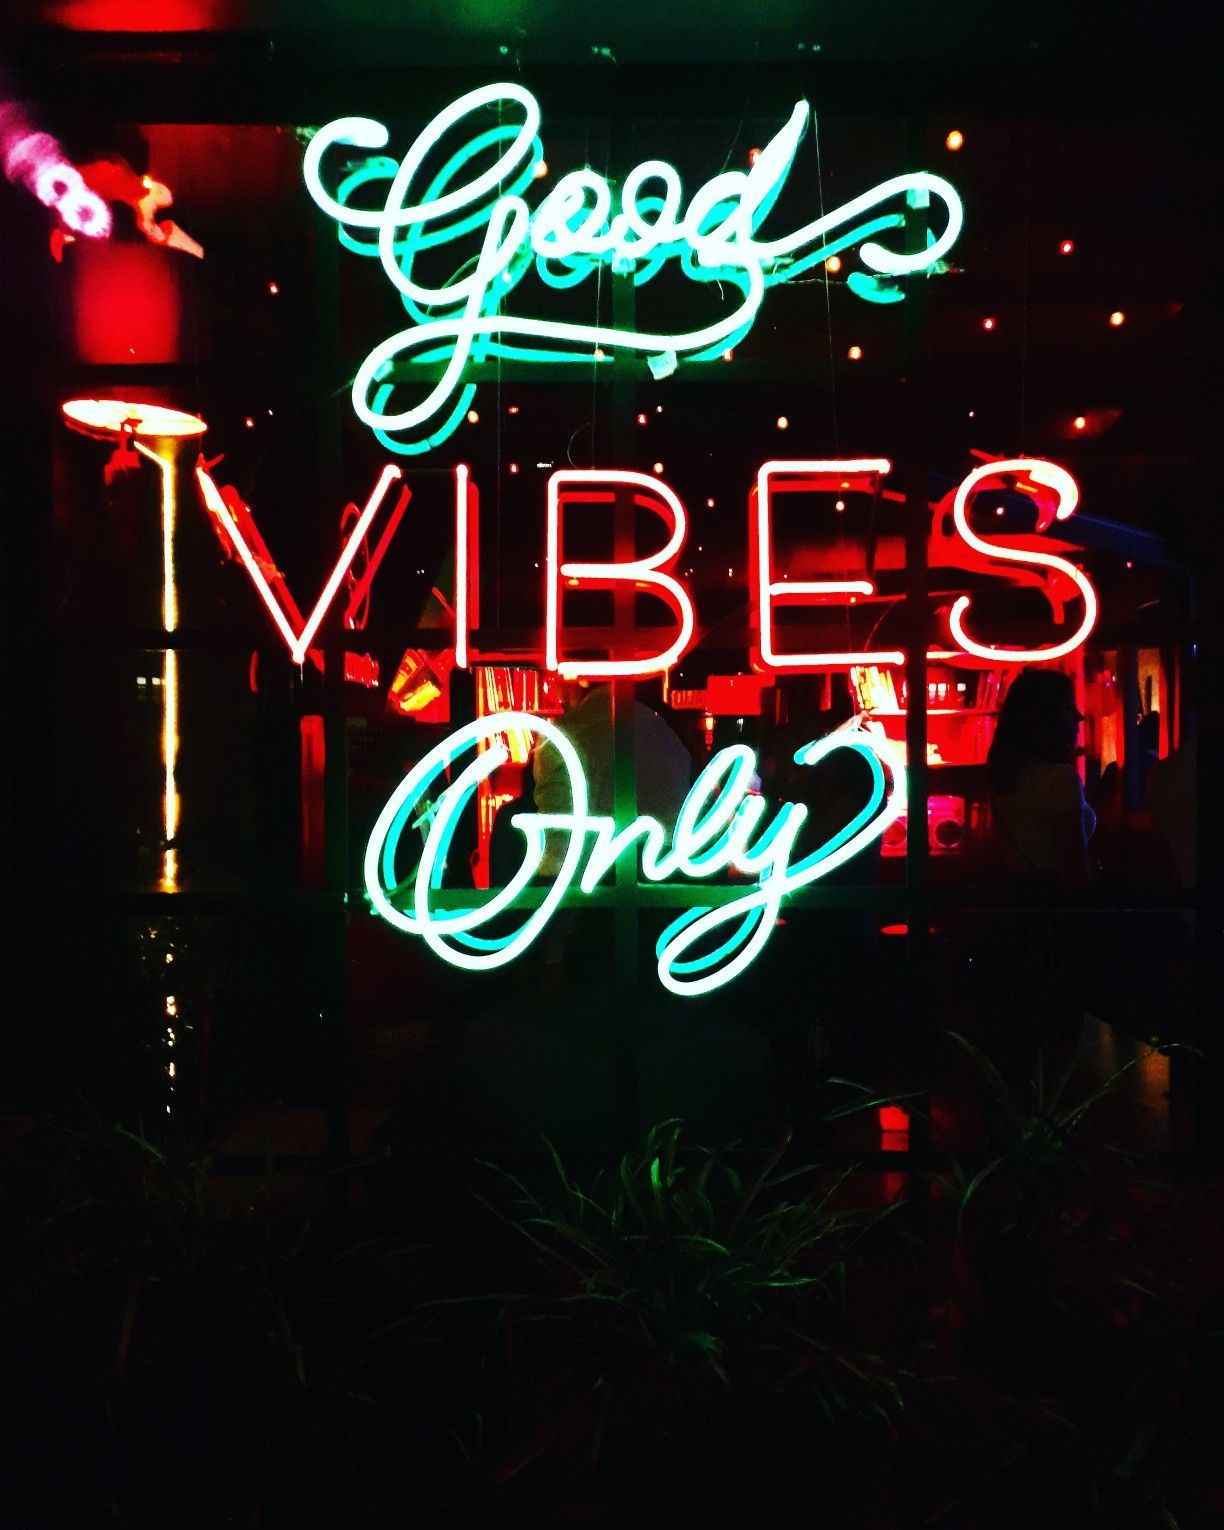 Aesthetic Vibes Wallpapers - Top Free Aesthetic Vibes ...